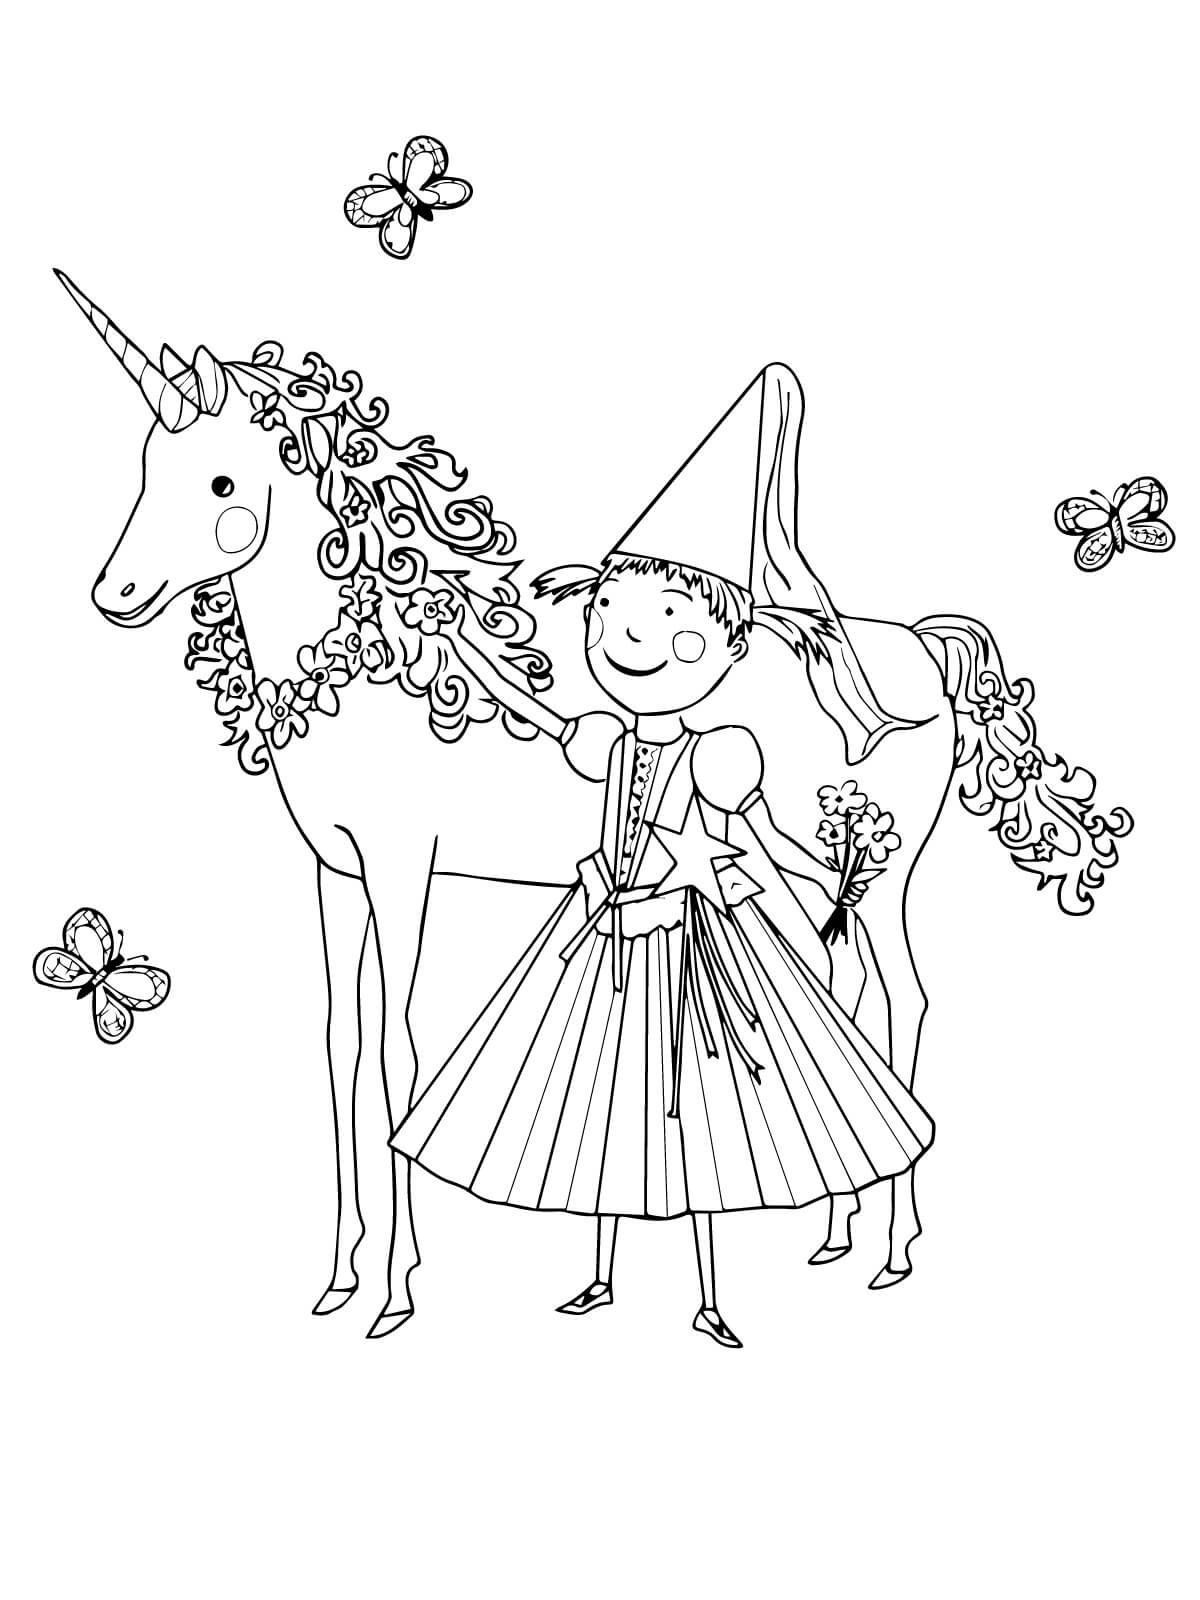 Unicorn Color Pages For Children Unicorn Coloring Pages Unicorn Pictures To Color Coloring Pages